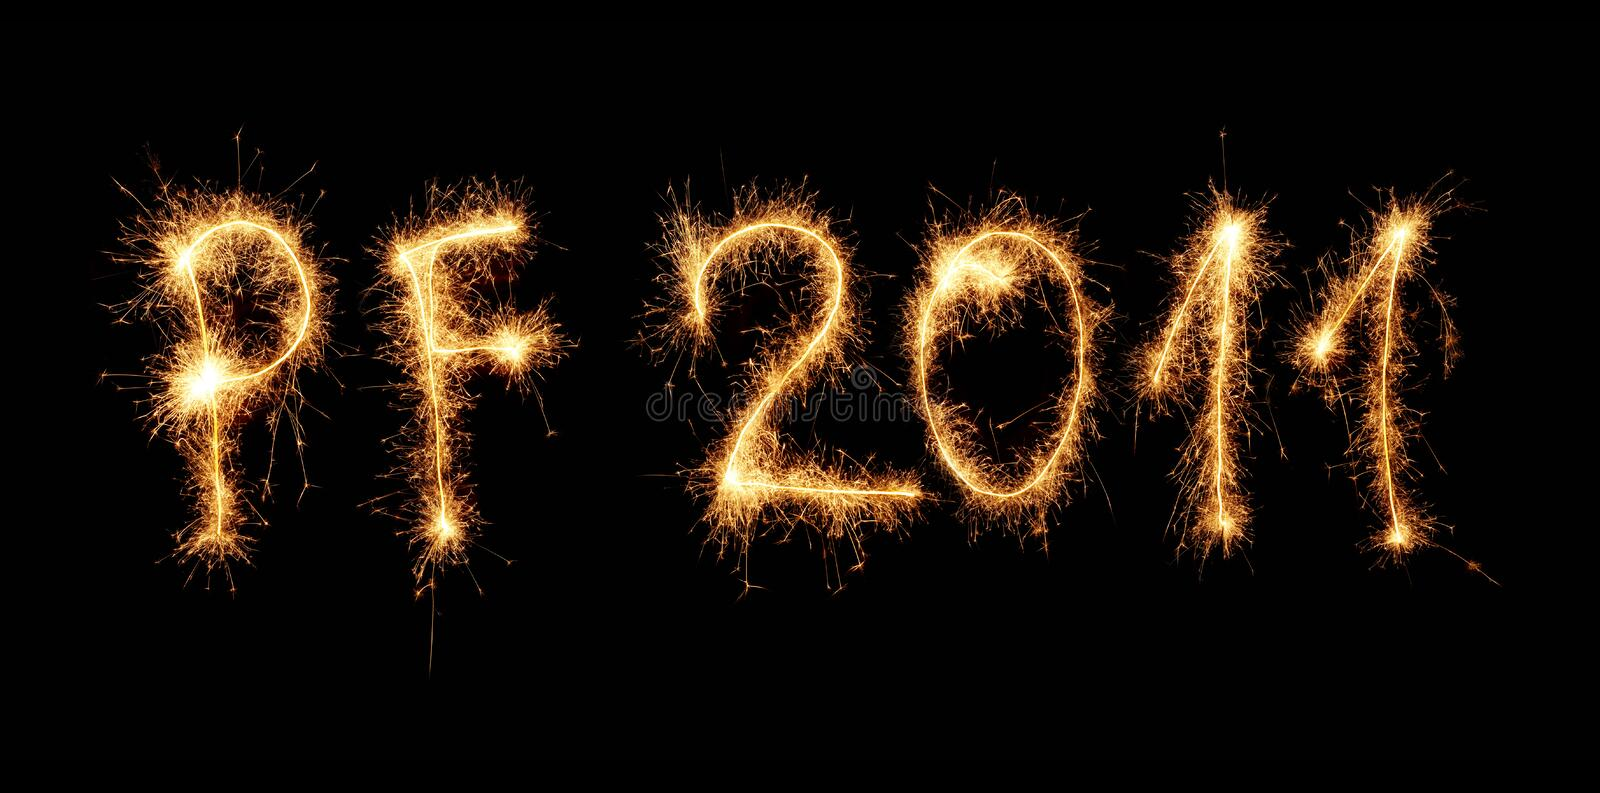 Download New Year 2011 Stock Photos - Image: 16925383